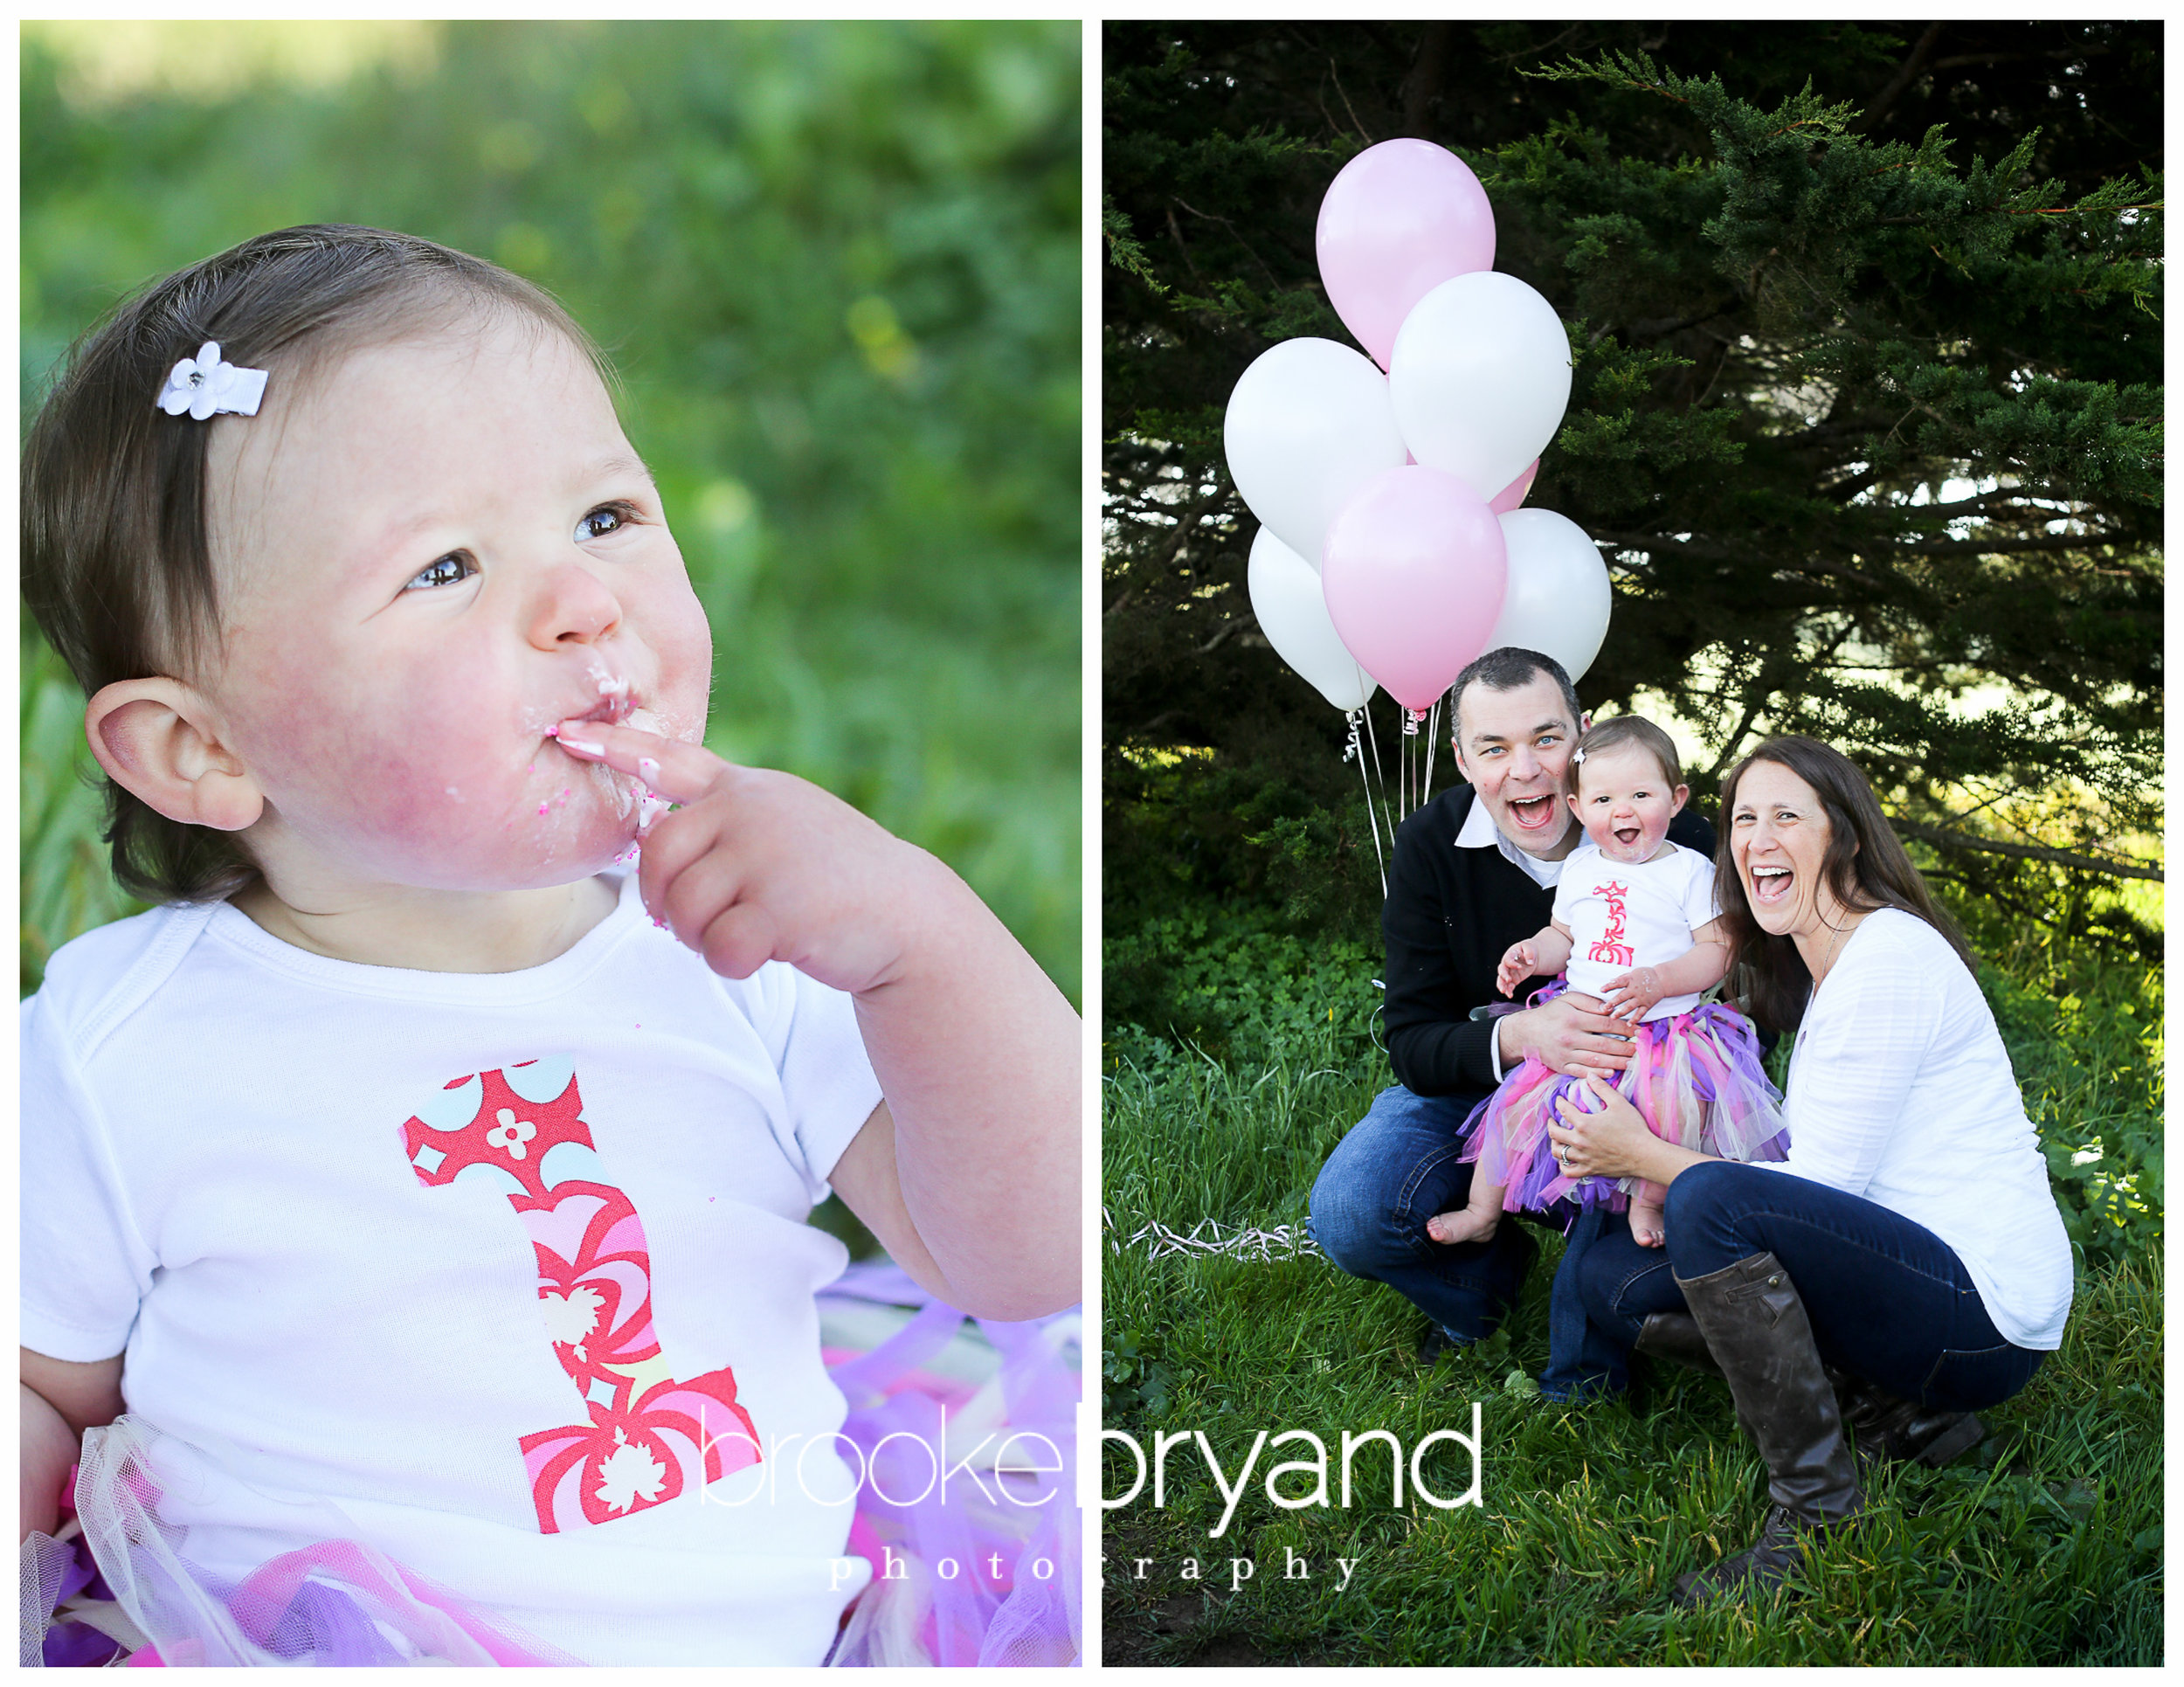 Brooke-Bryand-Photography-San-Francisco-Family-Photographer-China-Beach-Lands-End-2-up-zalewski-7.jpg